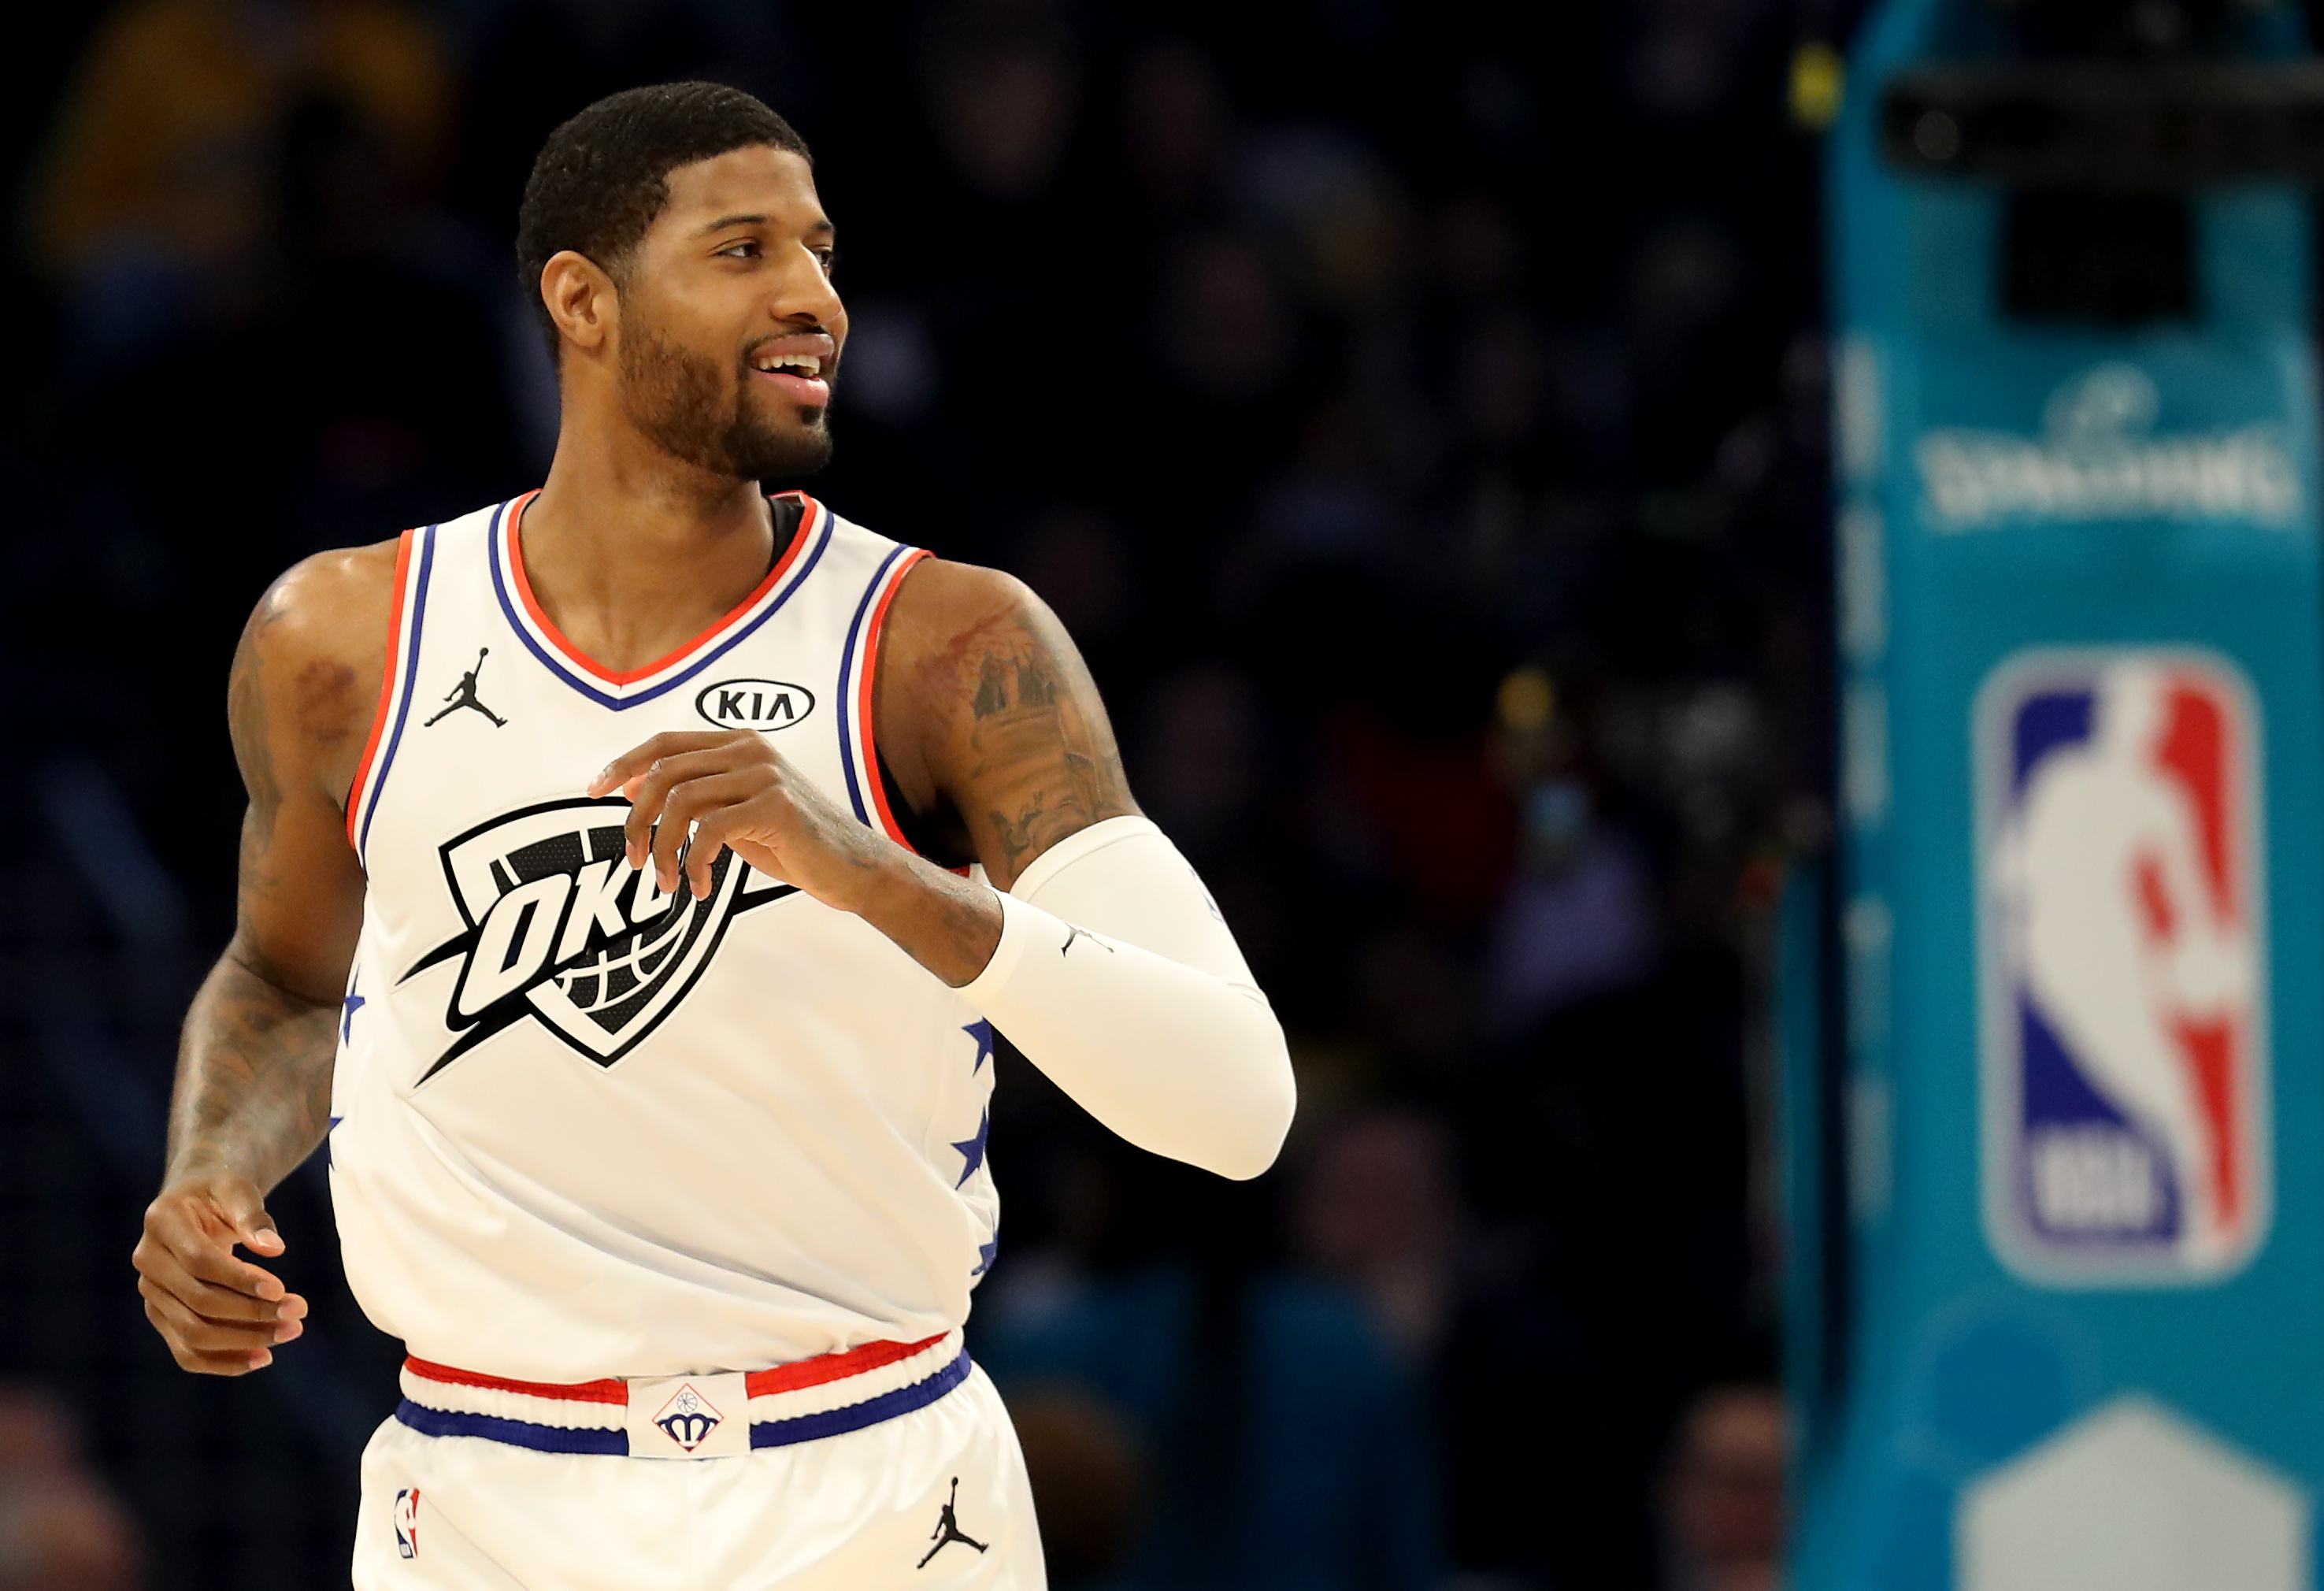 Paul George's clutch shooting makes you forget about his past struggles